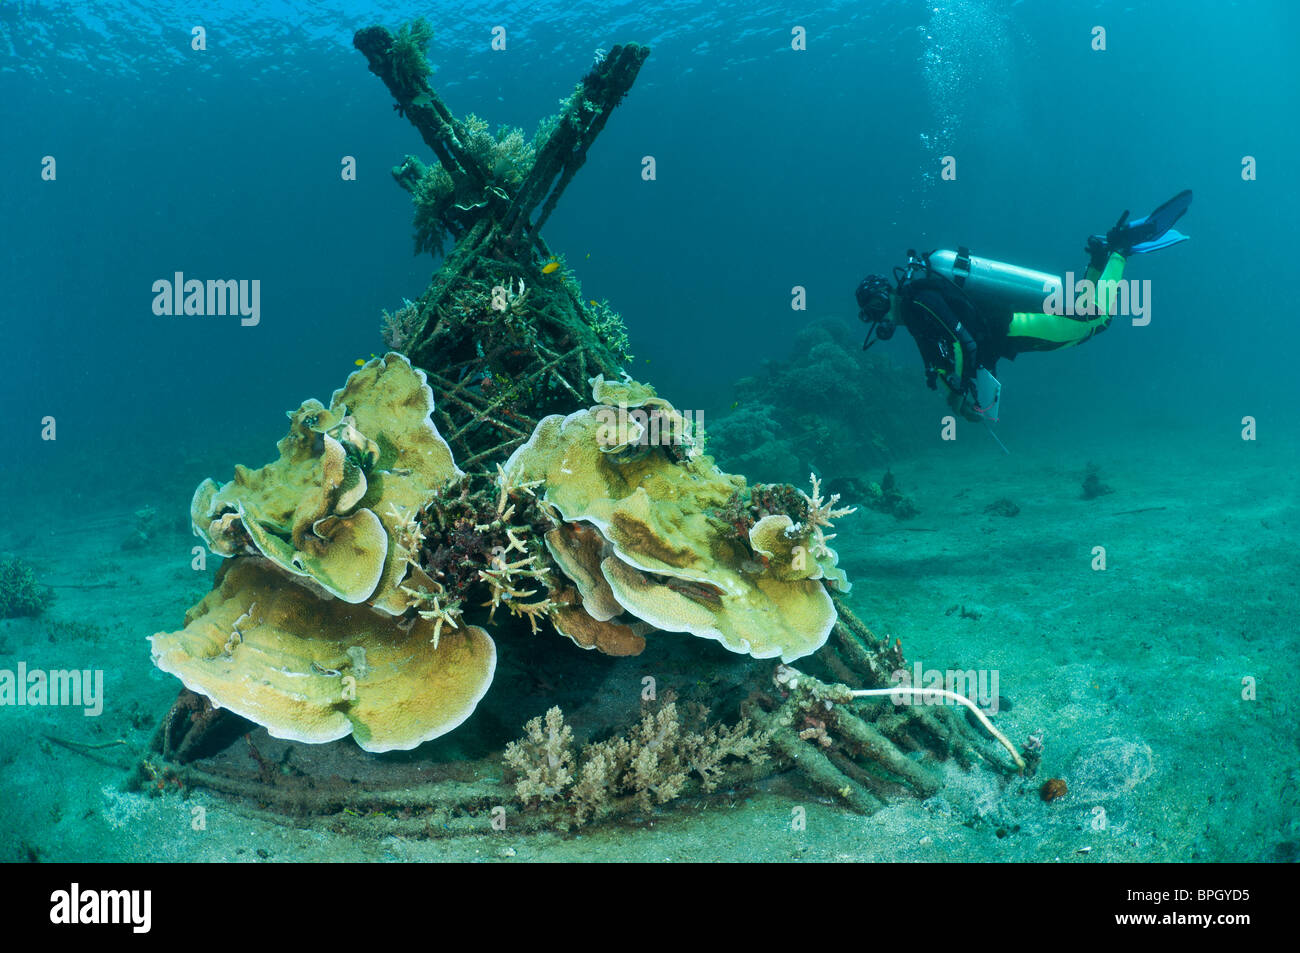 A diver examining a Biorock structure, Pemuteran, Bali, Indonesia. Stock Photo